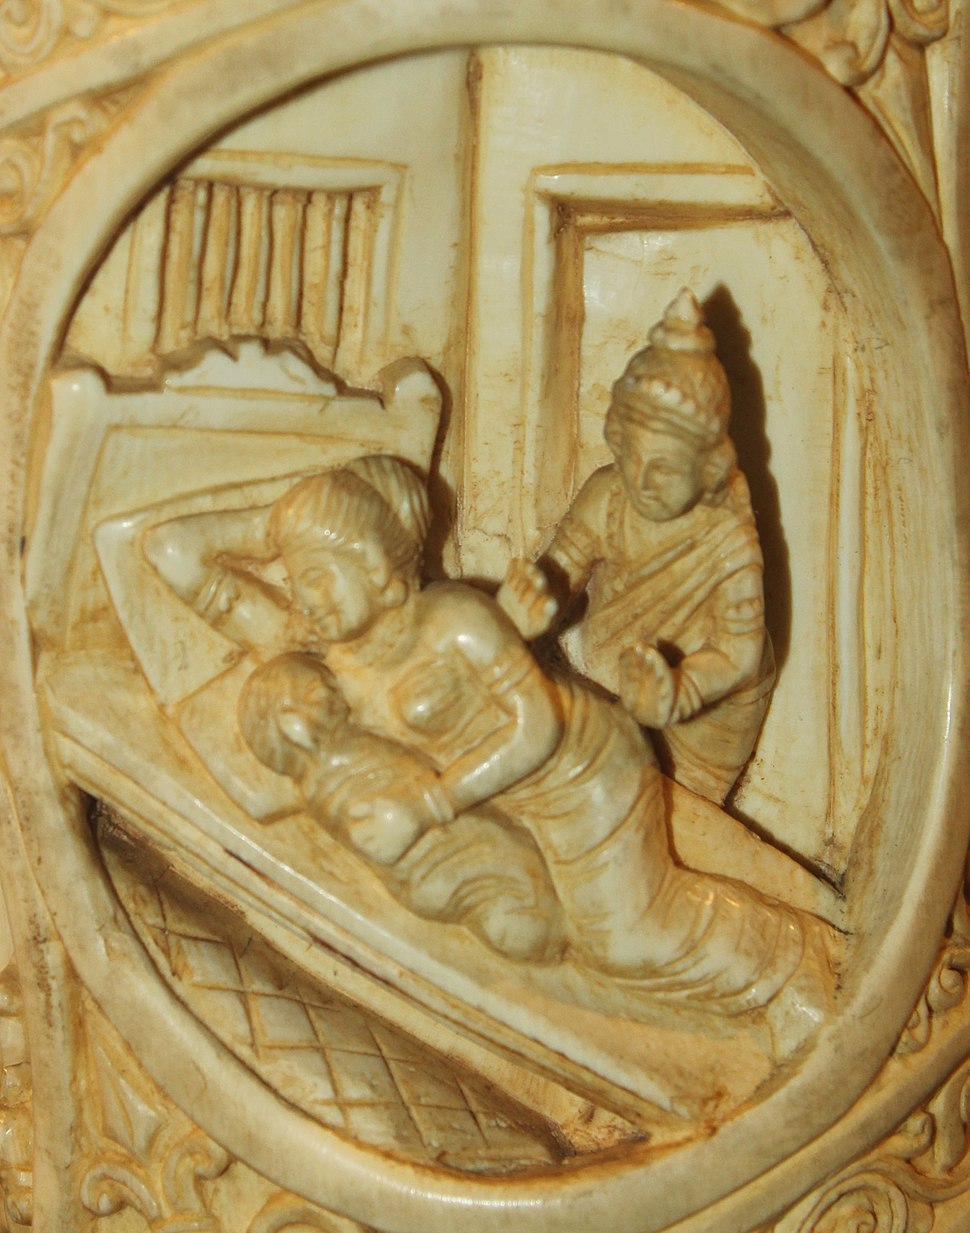 Siddhartha leaving sleeping Yashodhara and Rahula Roundel 17 buddha ivory tusk